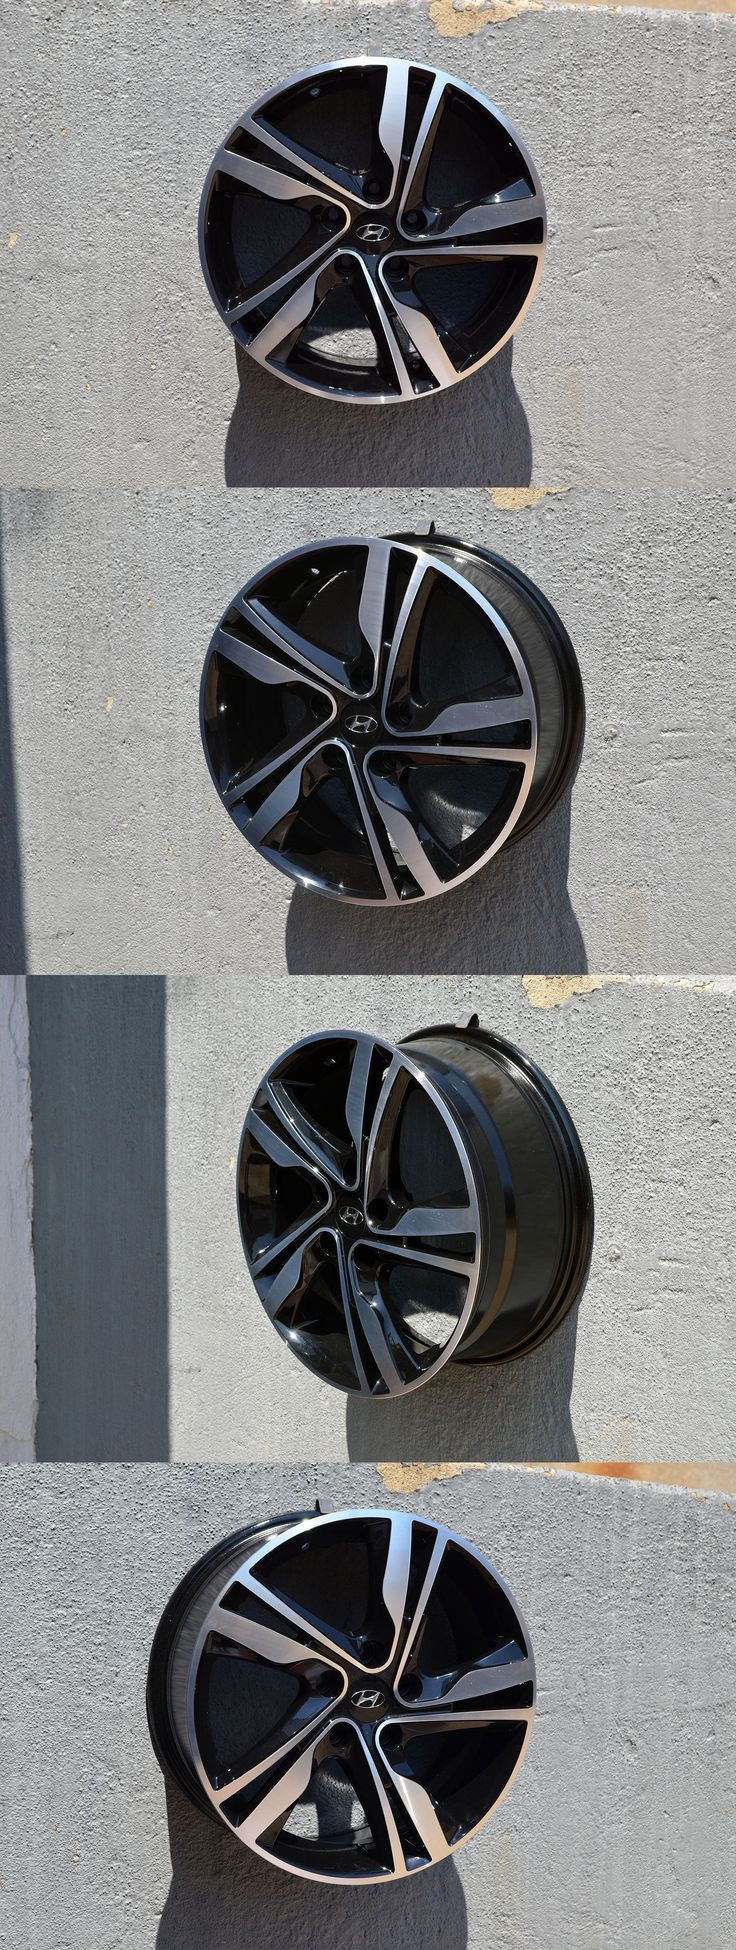 auto parts - general: Set Of 4 Wheels 17 Inch Black Machined Rims Fit Hyundai Sonata Gls -> BUY IT NOW ONLY: $399.99 on eBay!